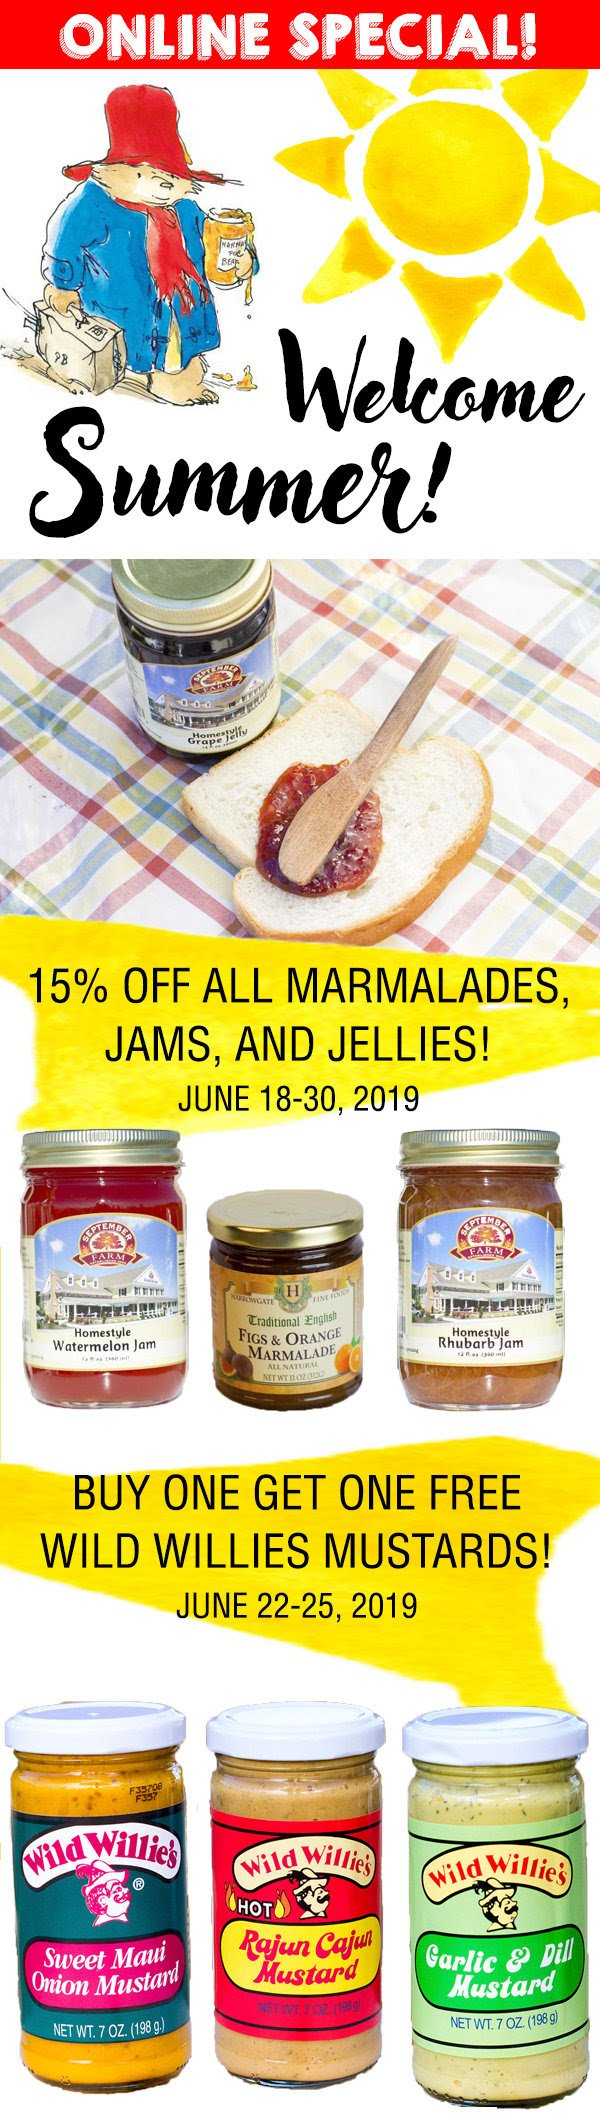 summer specials on marmalades, jams, and jellies